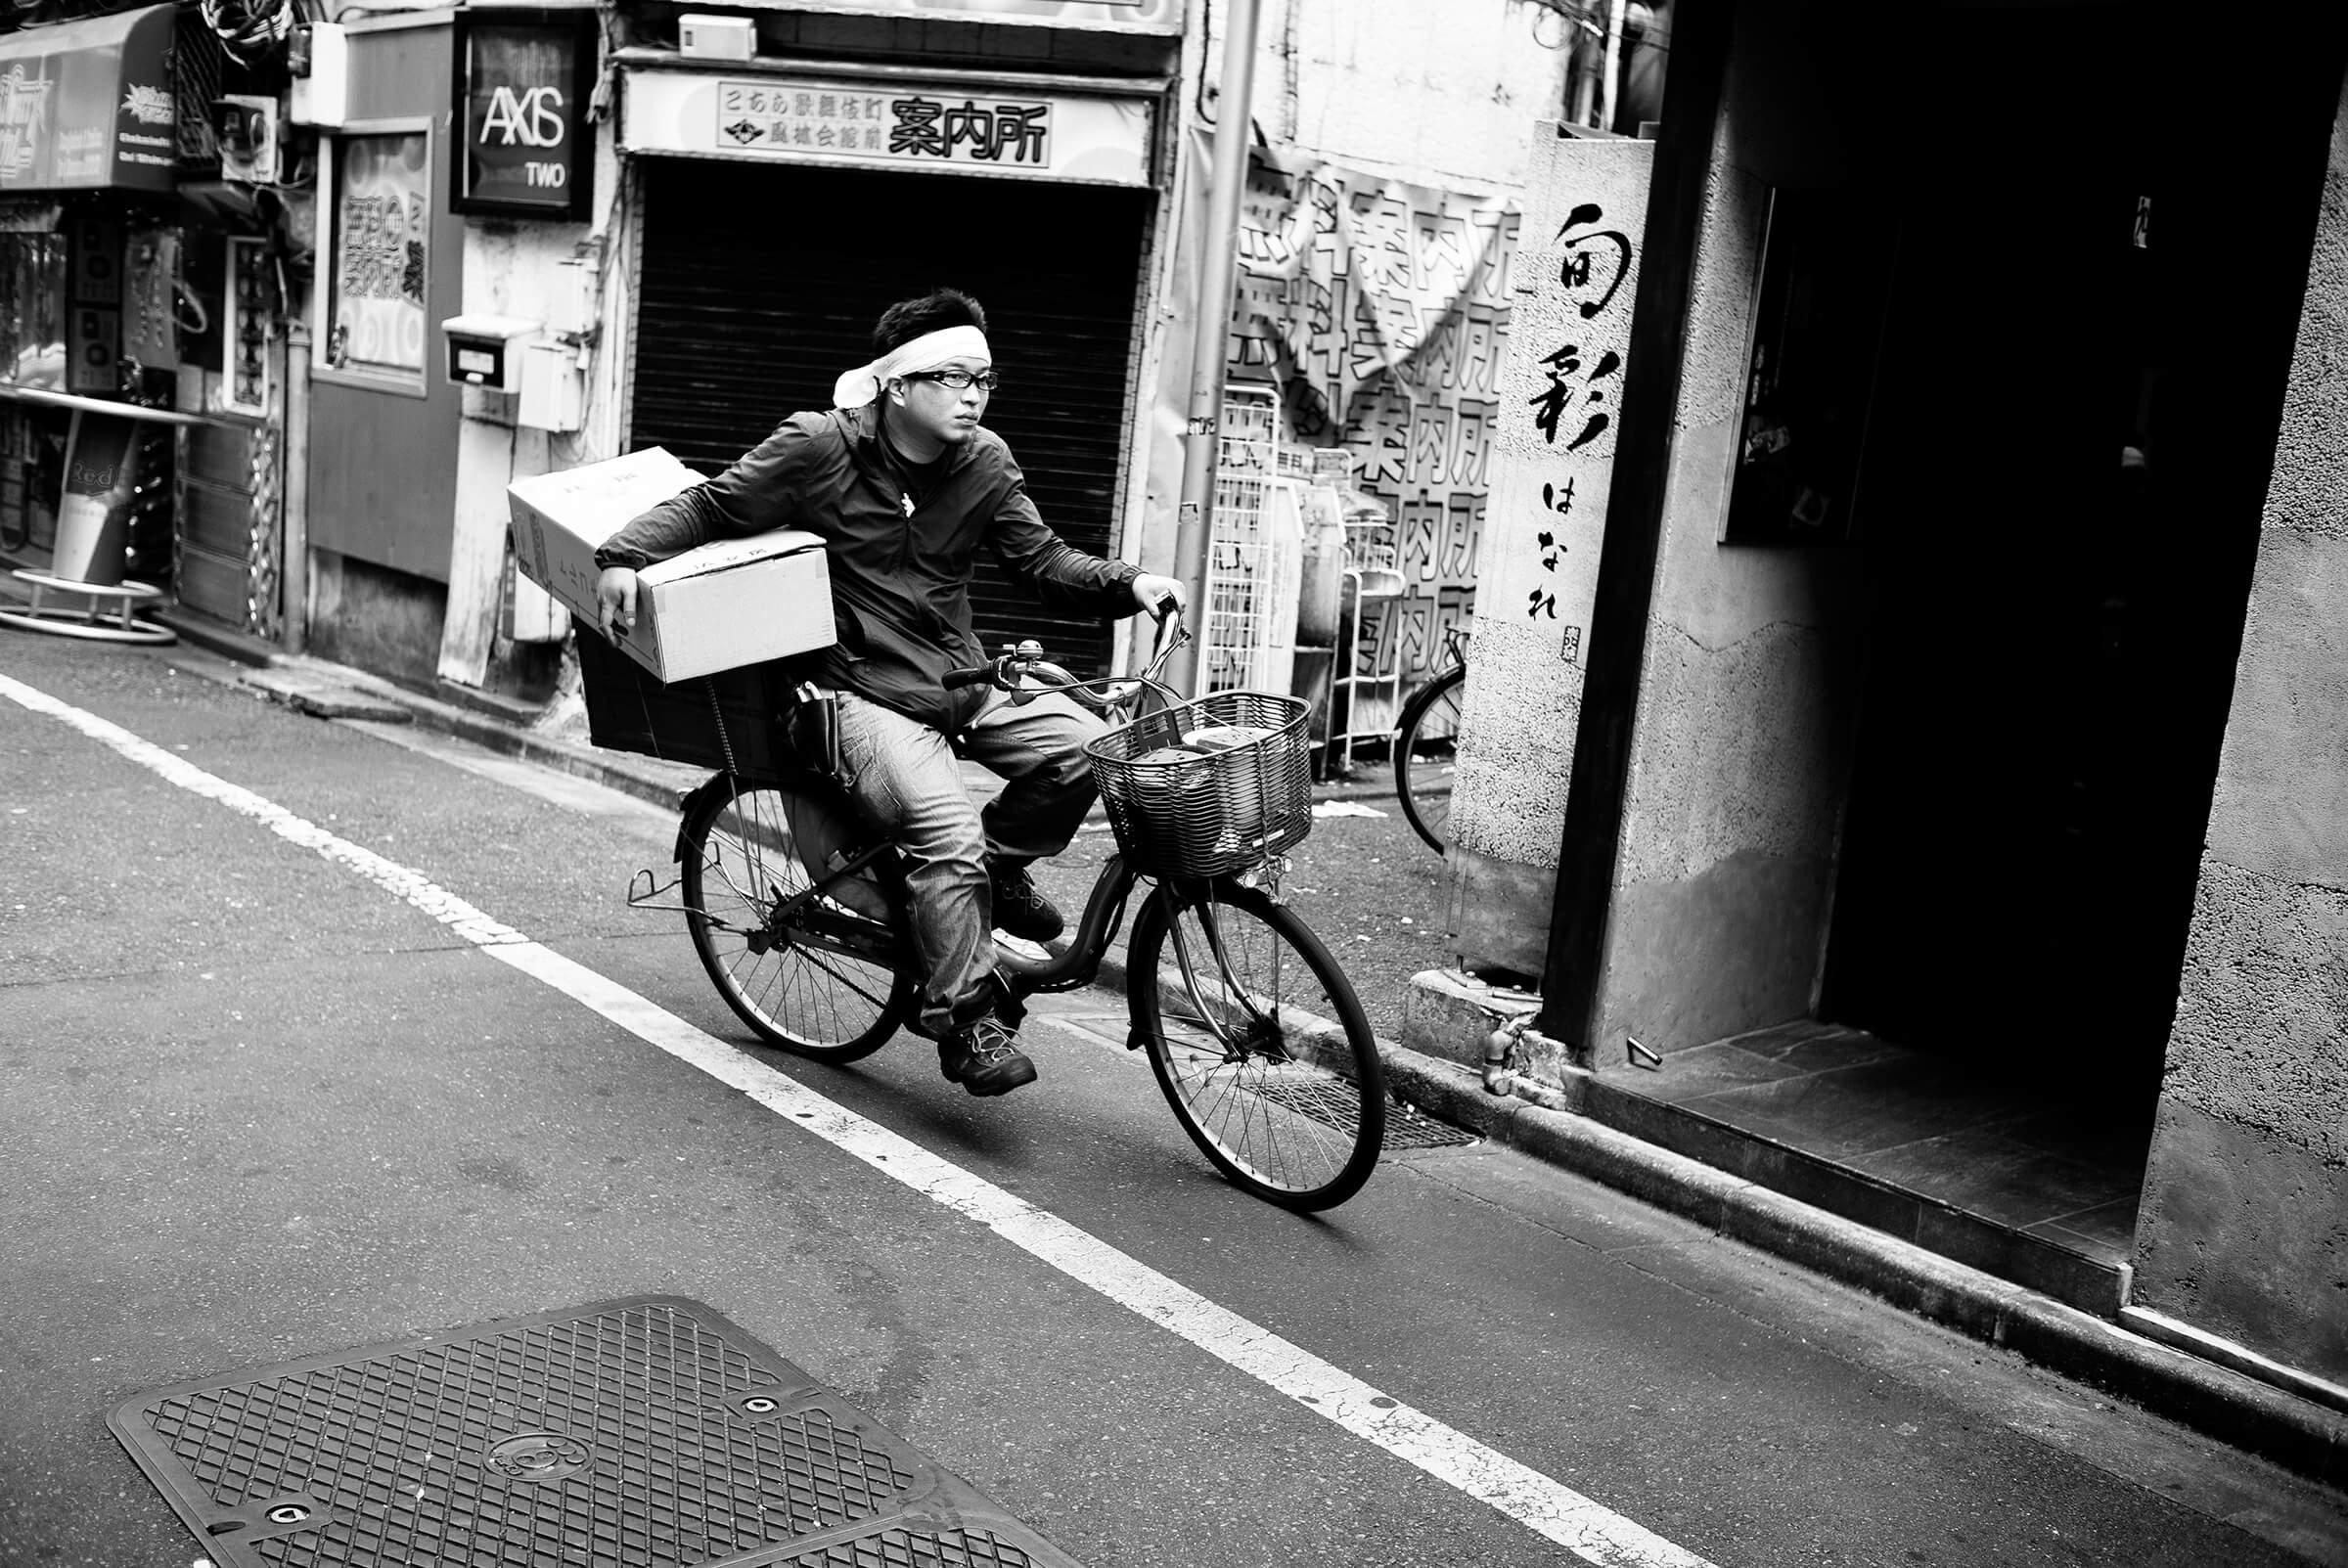 delivery by bicycle, urban tokyo style — tokyo times